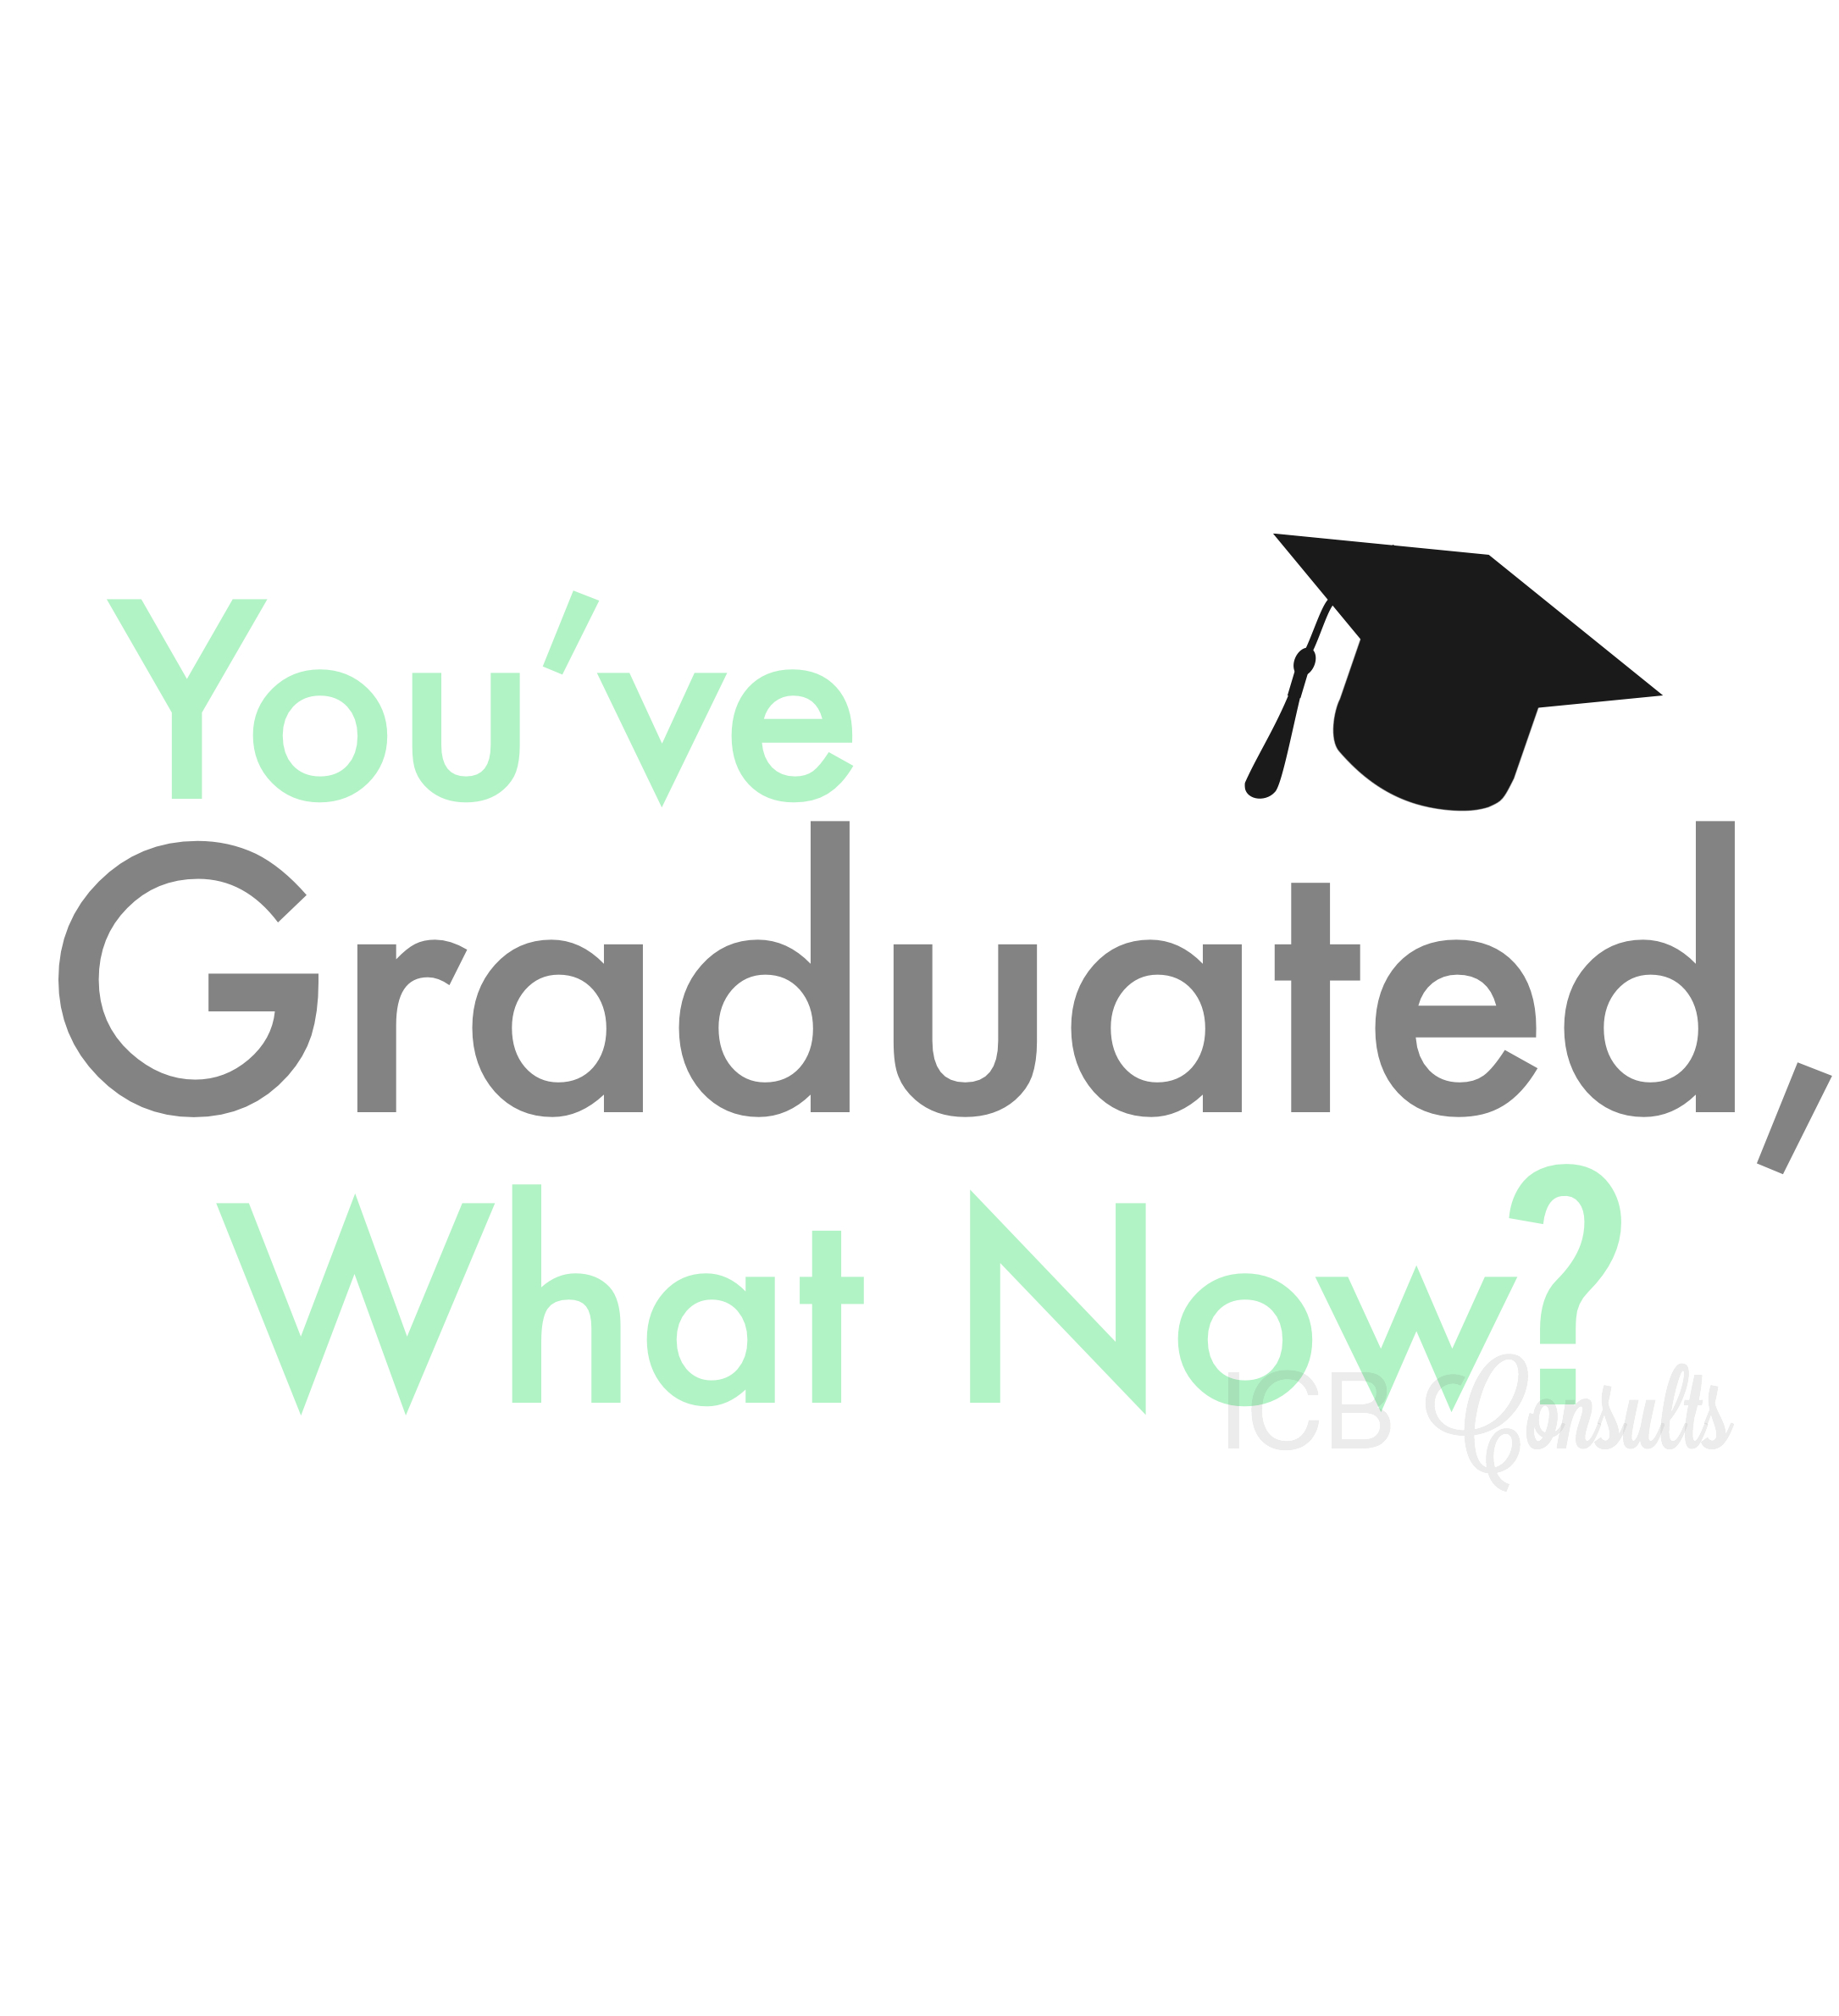 The next steps after graduating college